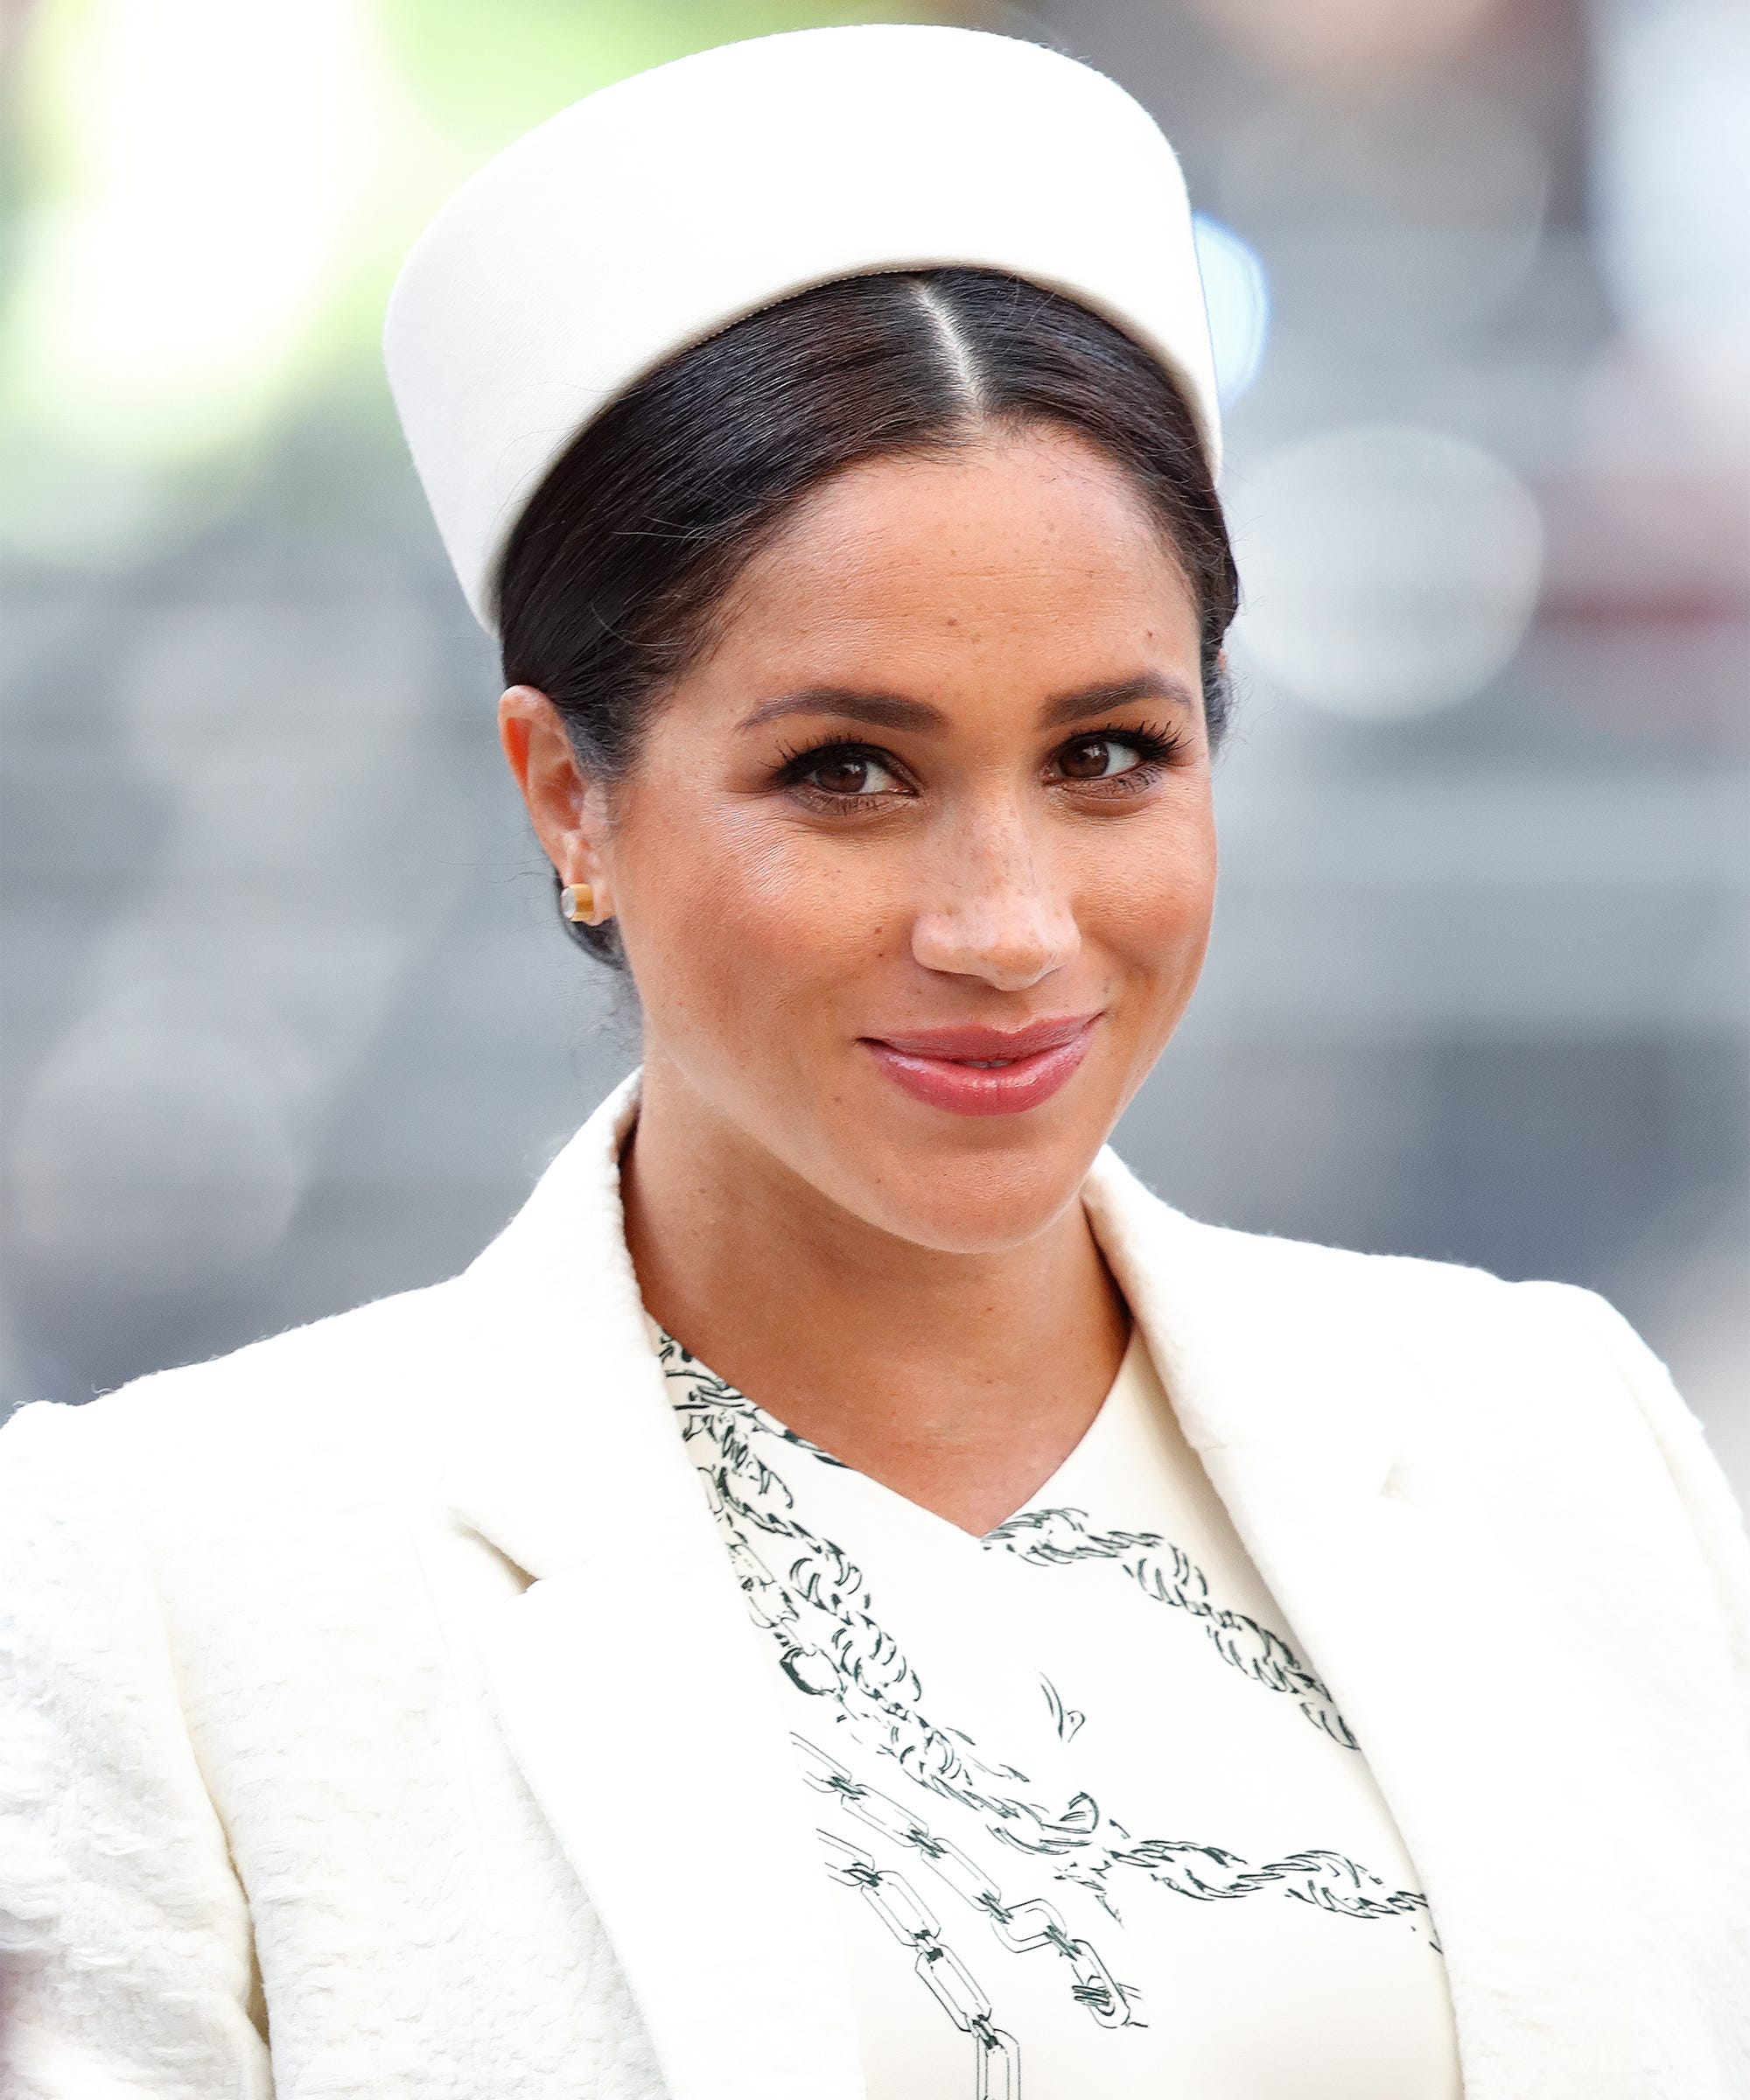 Meghan Markle Reportedly Won't Meet With Trump During His U.K. Visit